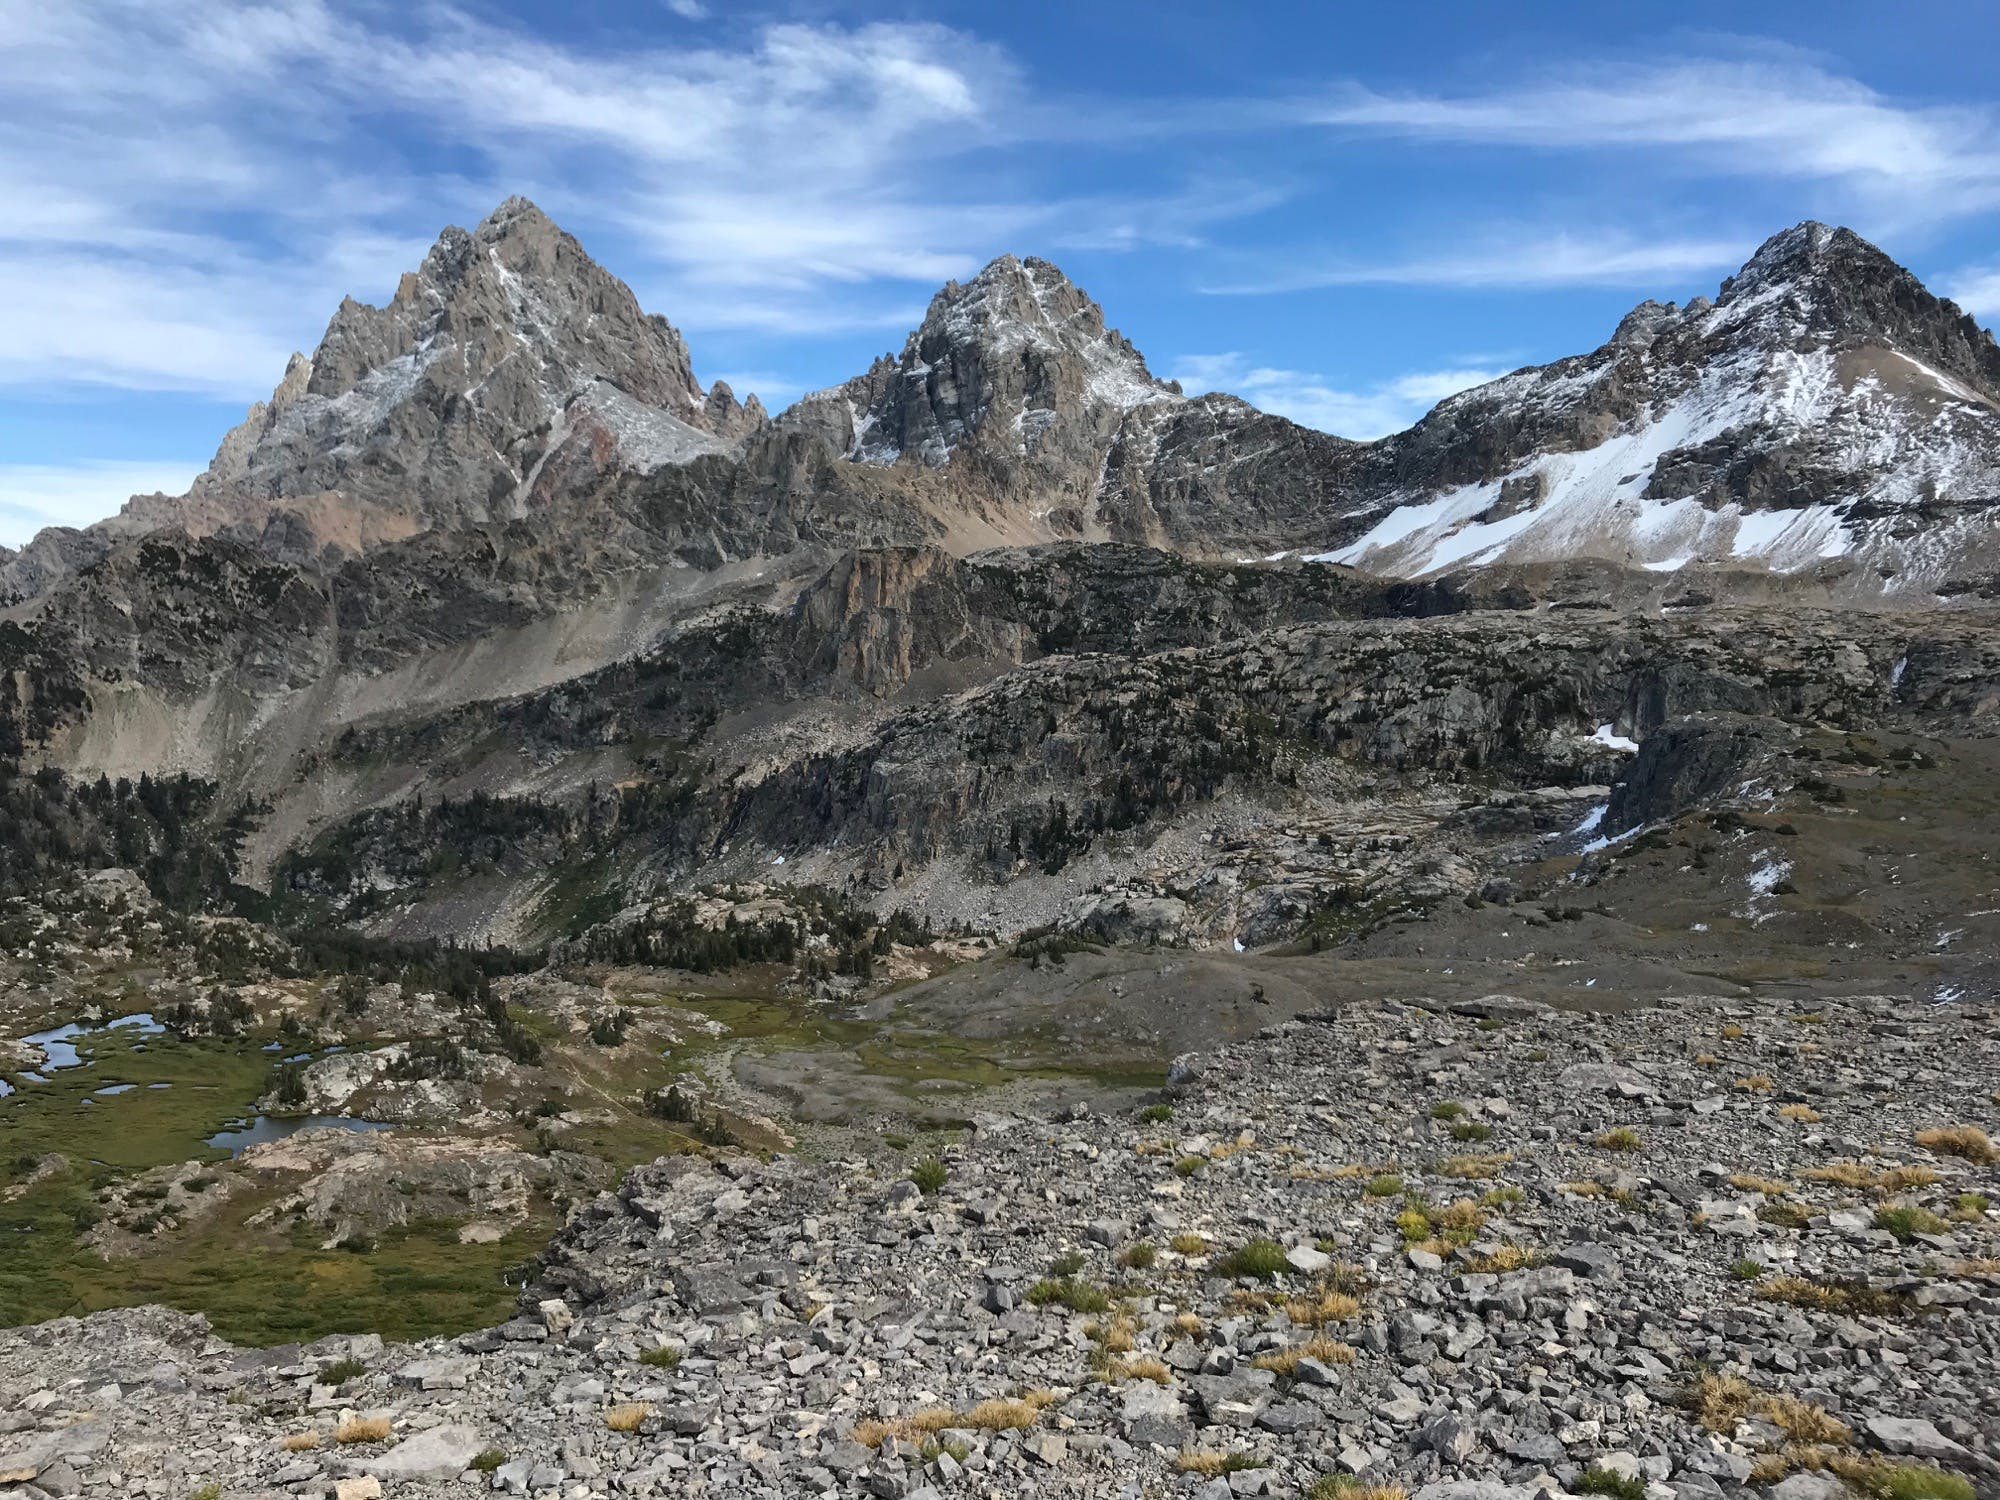 West-facing Grand Tetons looking magnificent